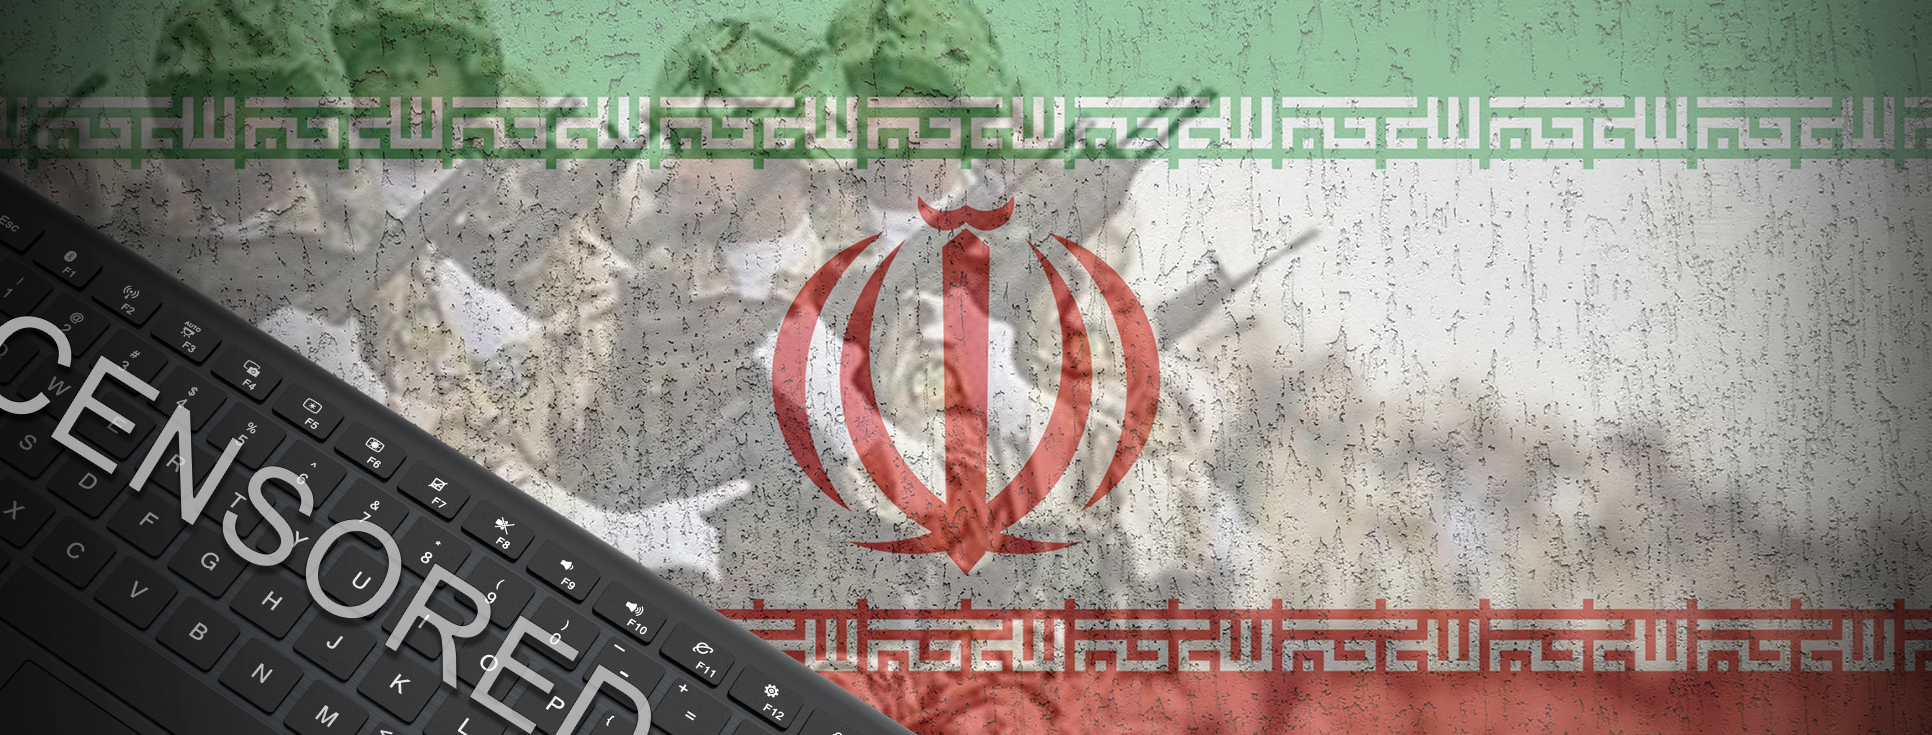 Iran Proposes Bill for Tighter Online Censorship with Military Control